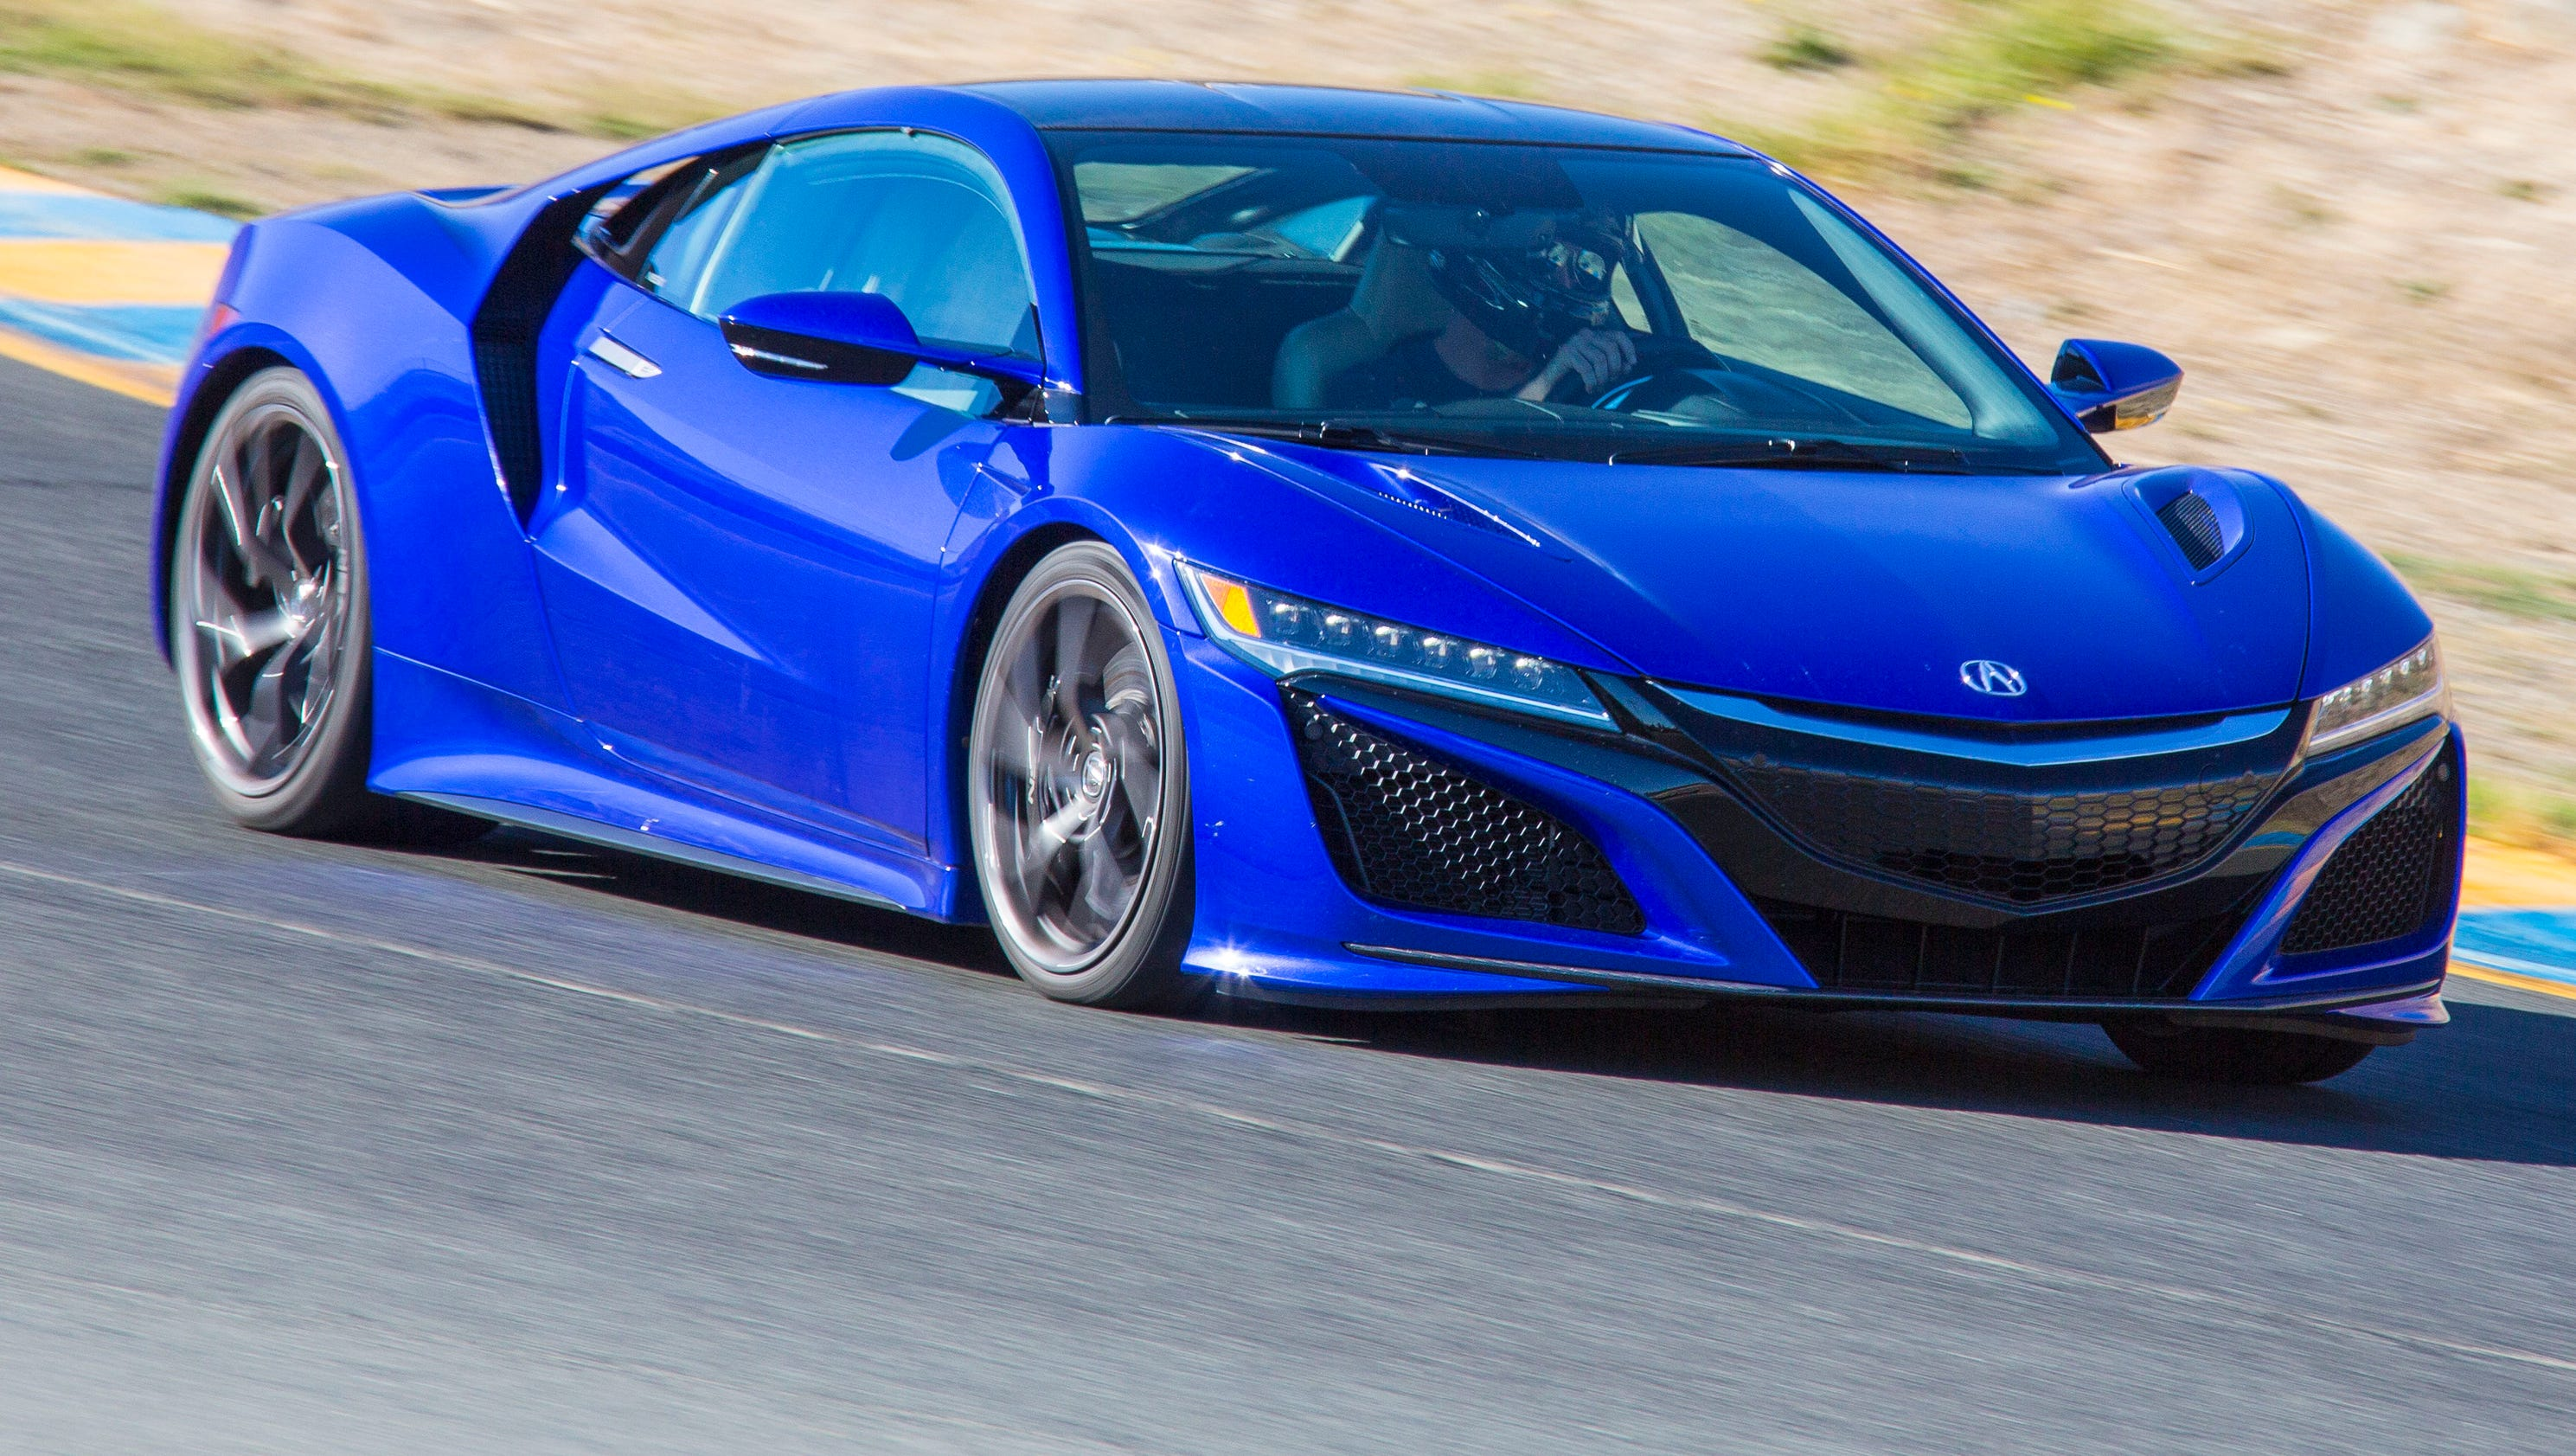 Acura's new NSX supercar will pack 573 horsepower